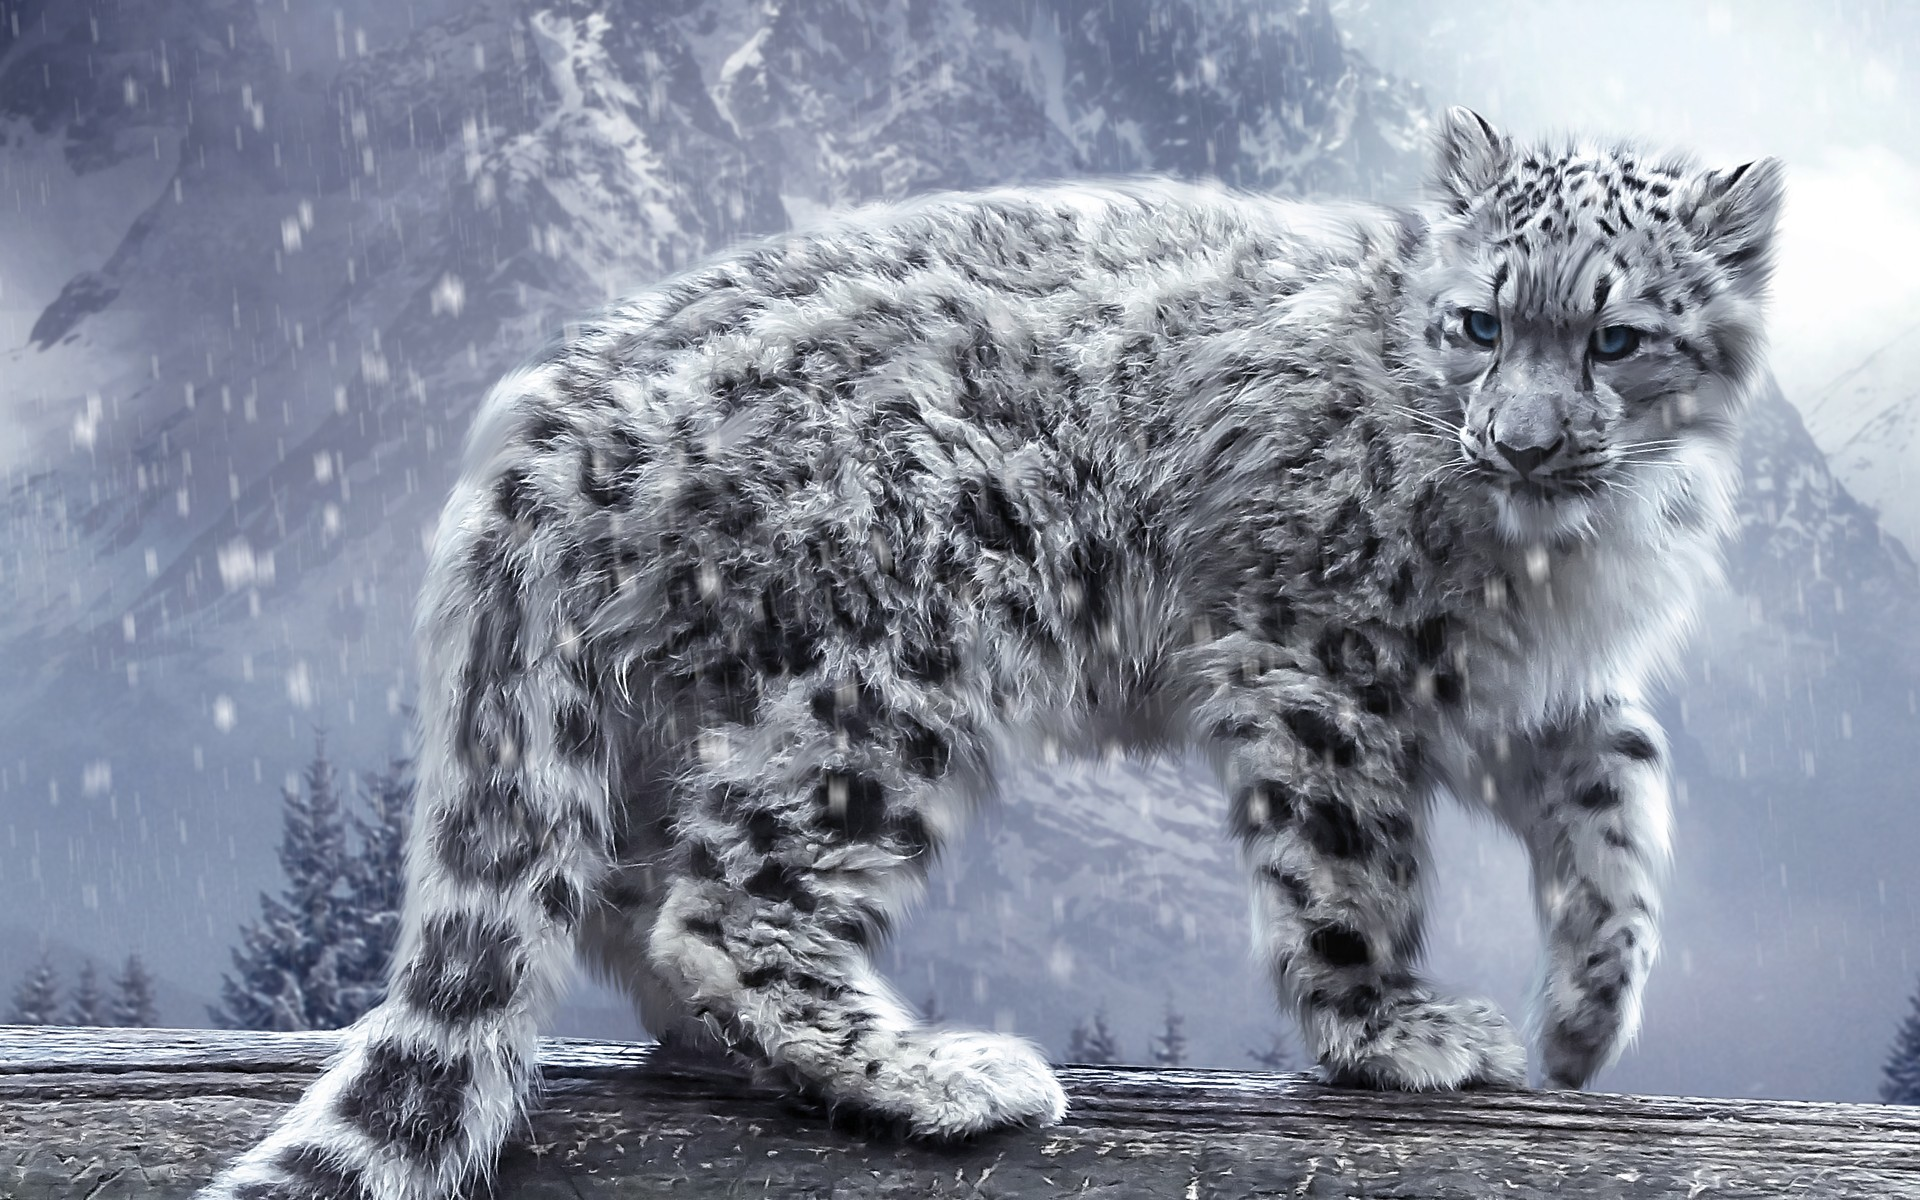 snow leopard wallpaper cool